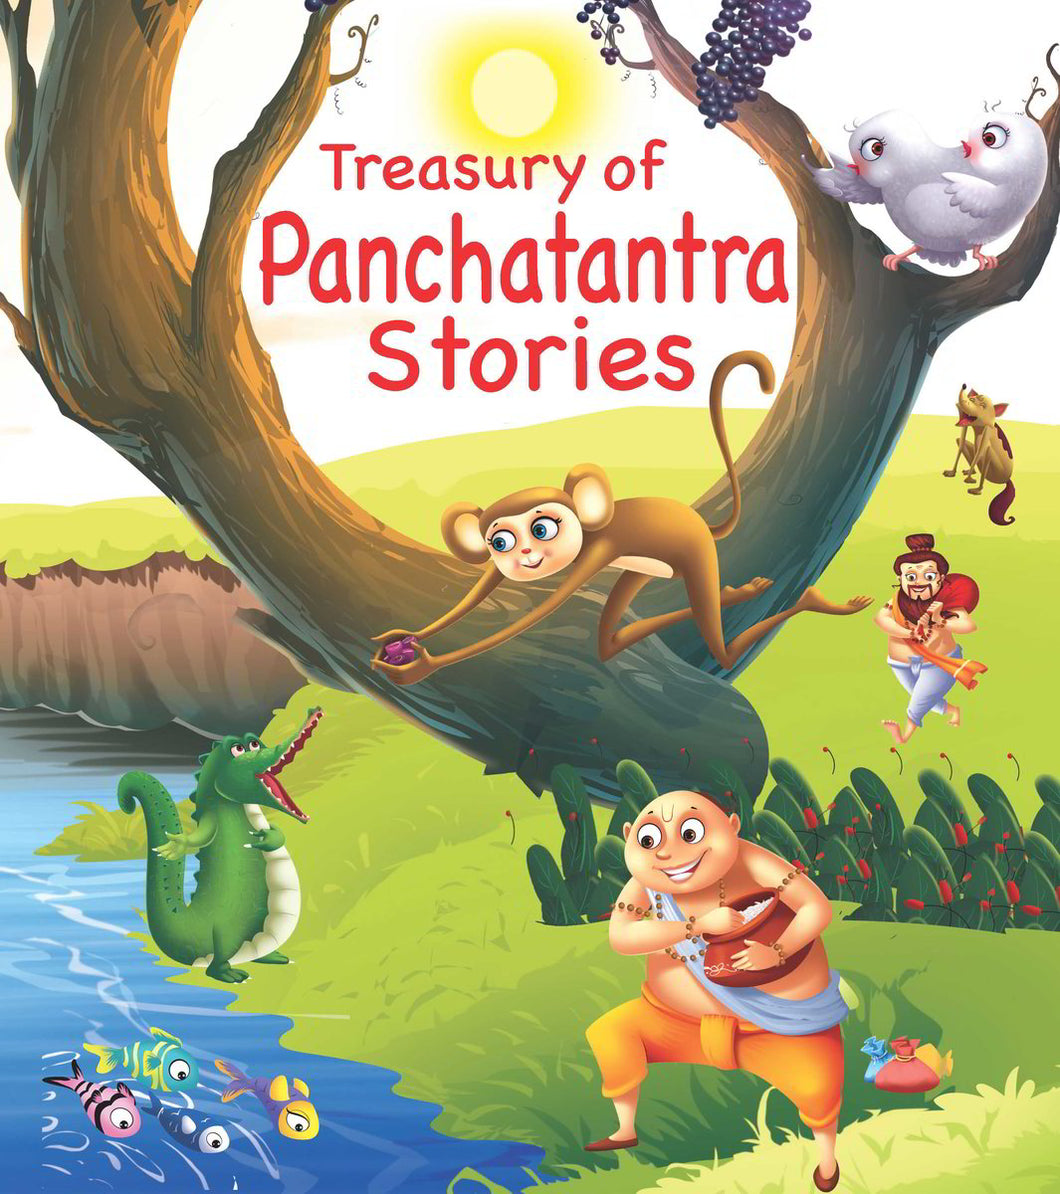 Treasury of Panchatantra Stories